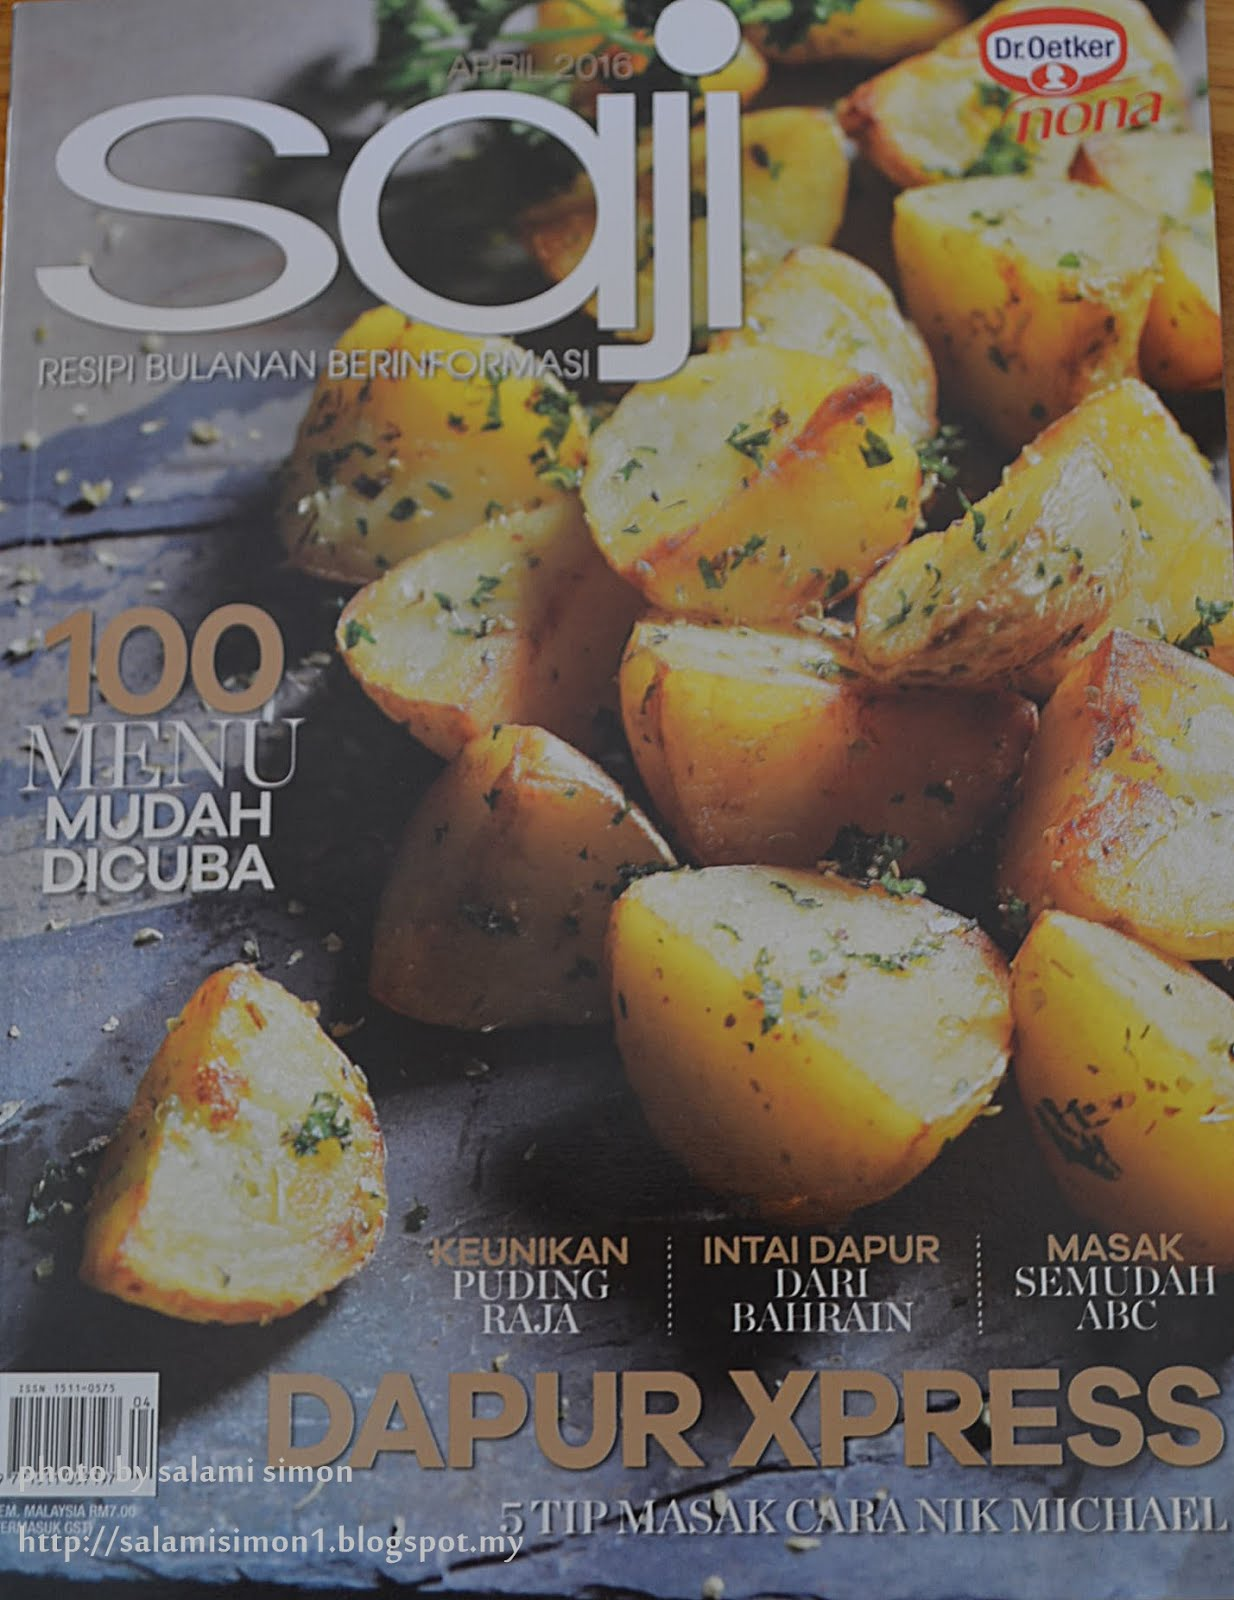 RESEPI AMIE'S LITTLE KITCHEN DI MAJALAH SAJI EDISI APRIL 2016